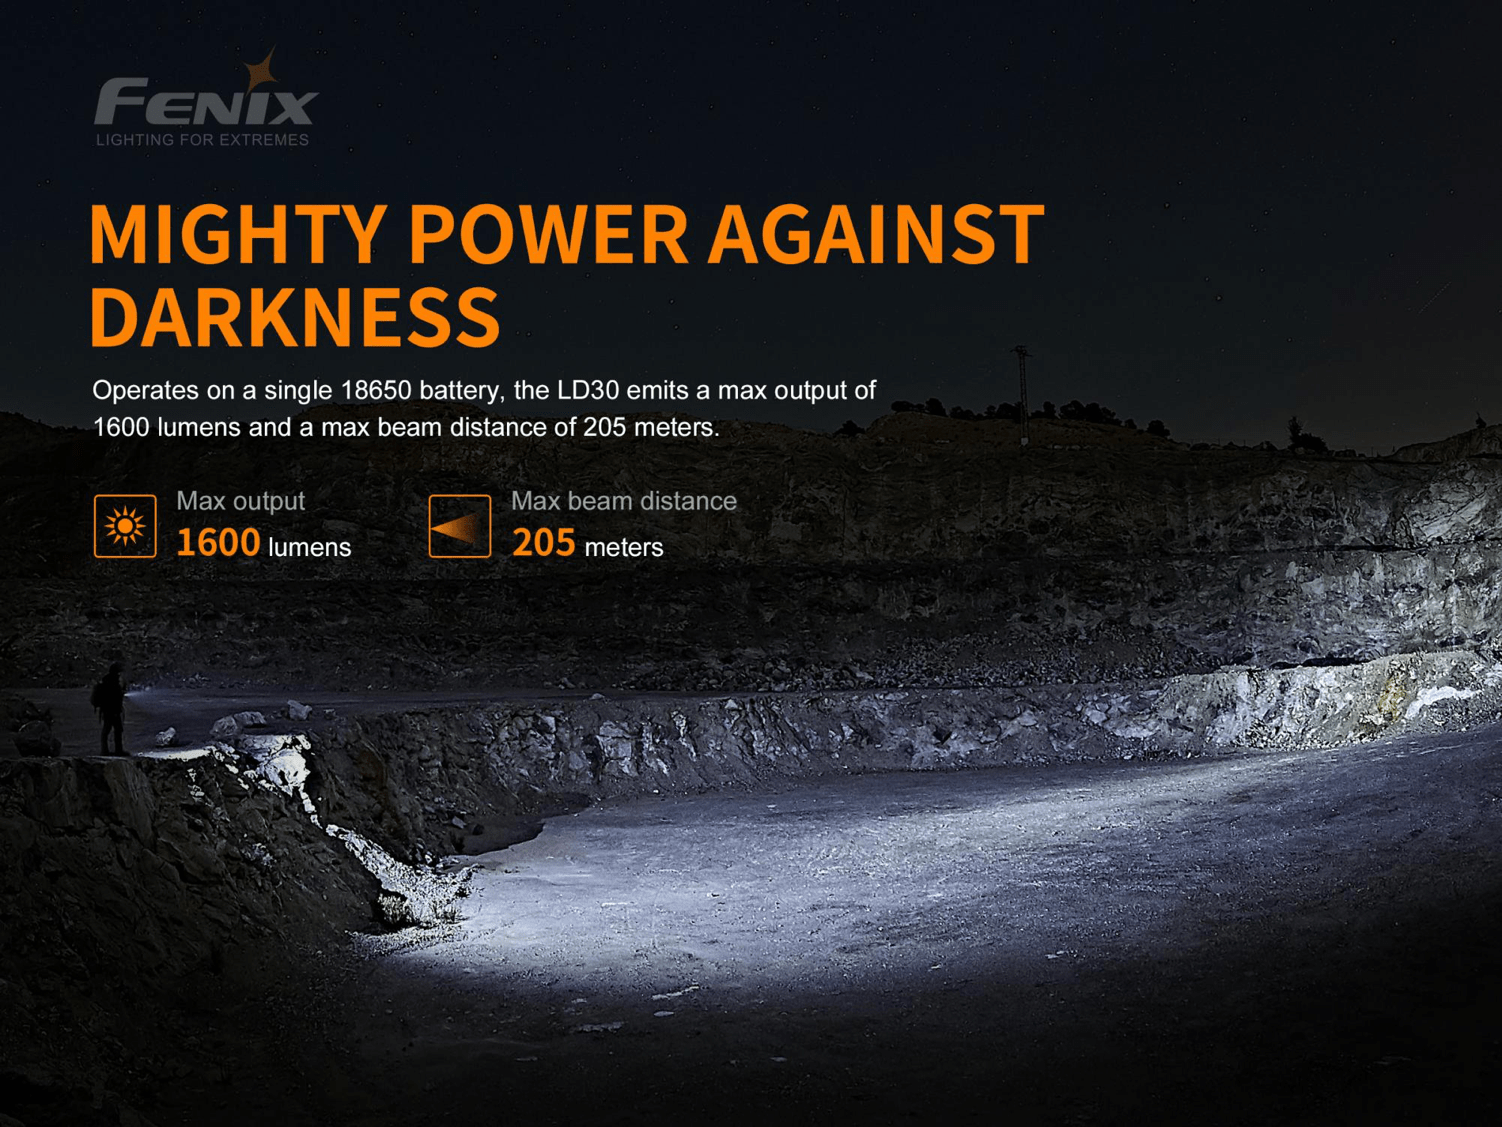 Fenix LD30 LED Flashlight in India, 1600 Lumens compact pocket size powerful LED Torch with tactical switch, EDC work torch in India